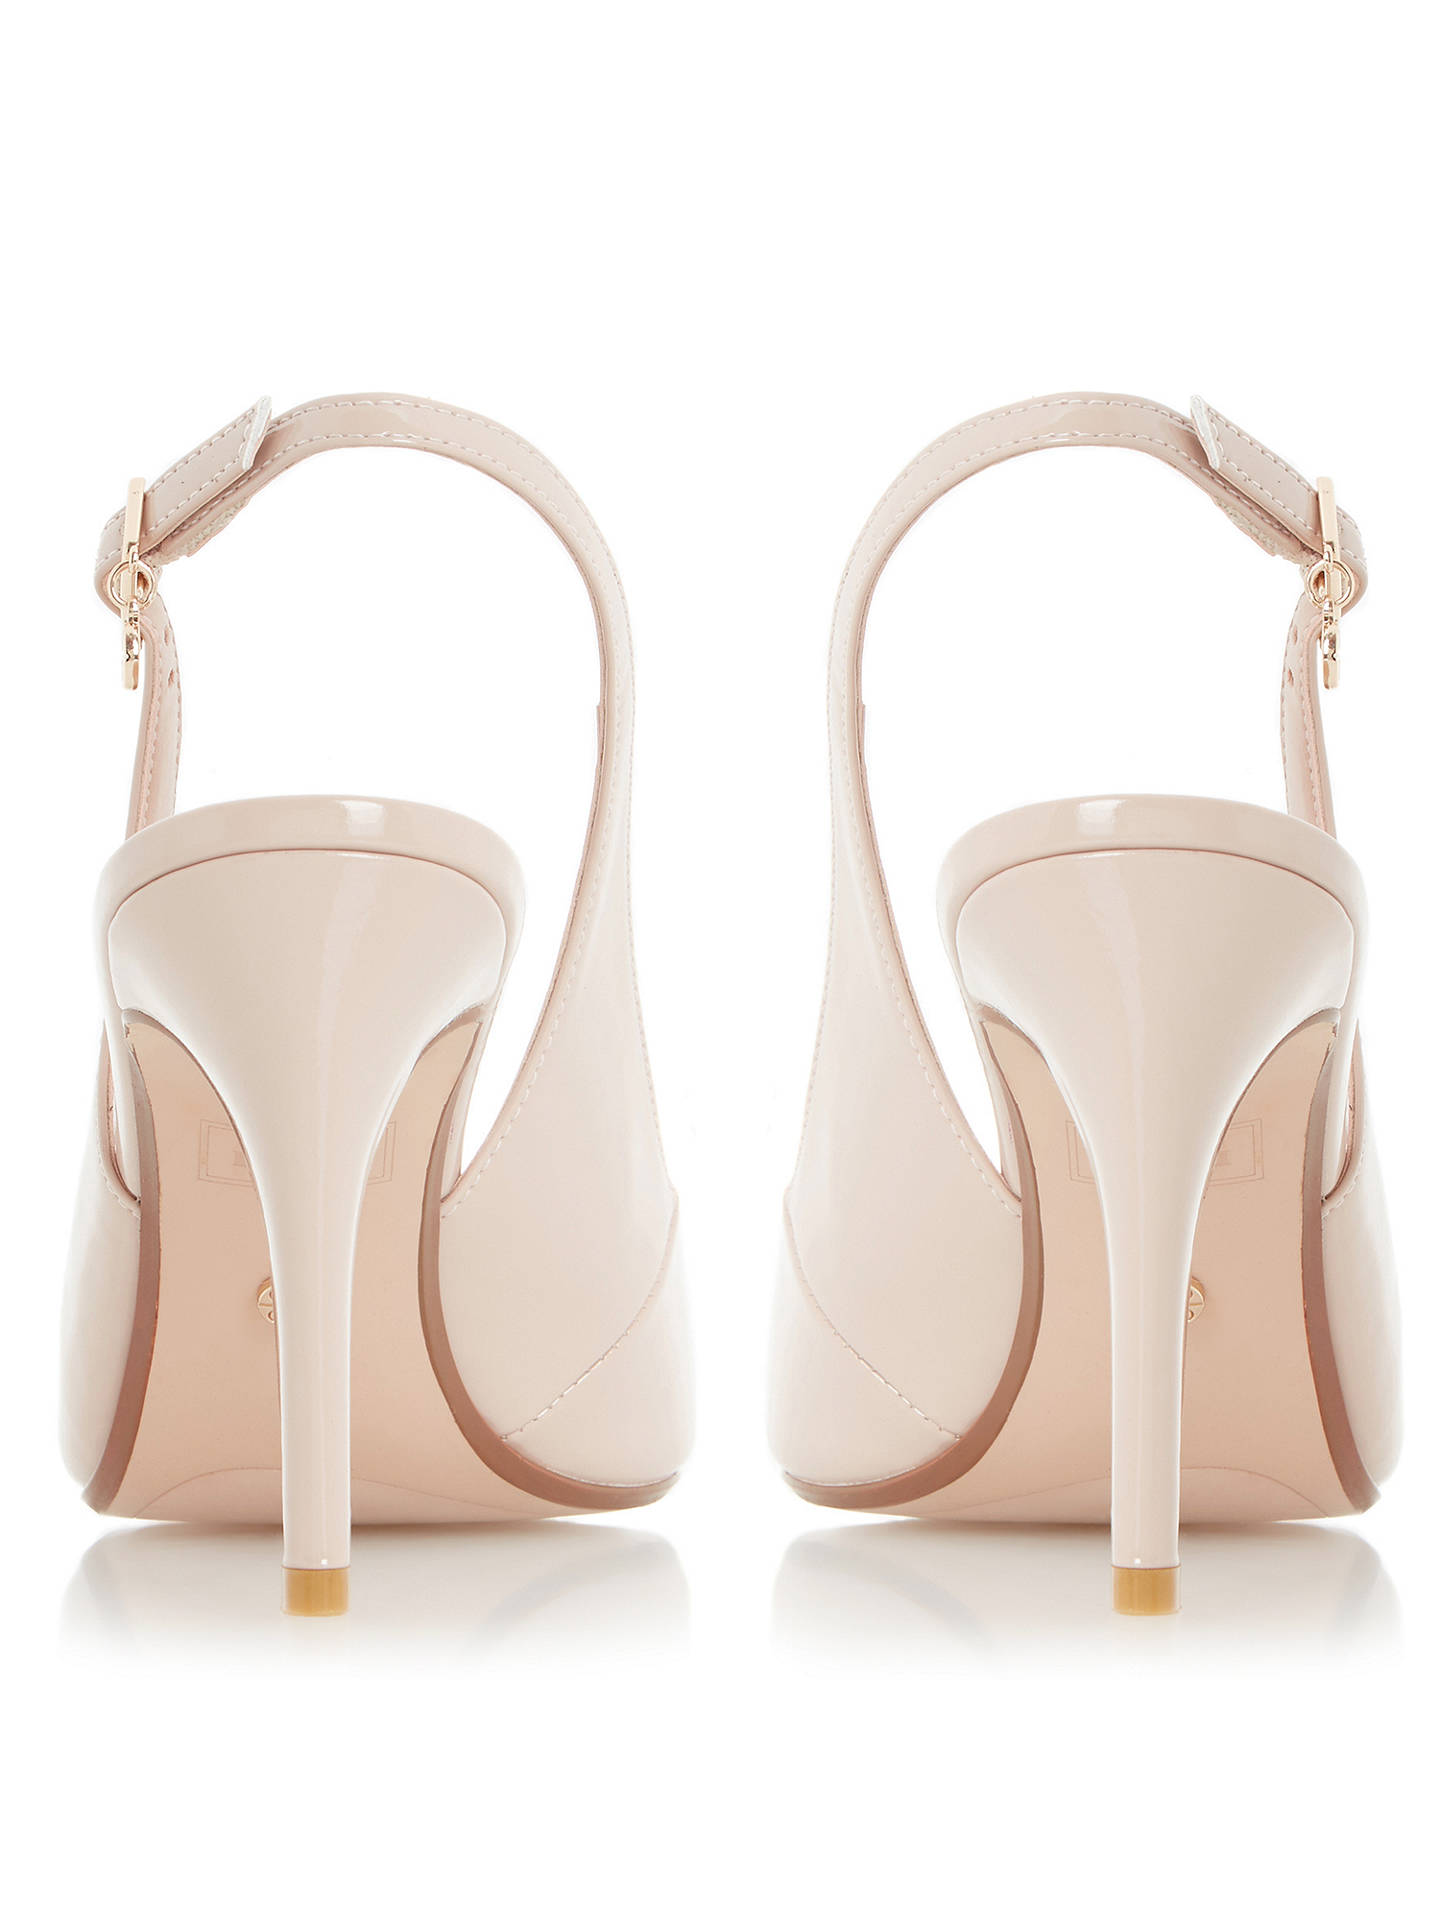 KRISP Nude Patent Sling Back Peep Toe Wedges - Shoes from